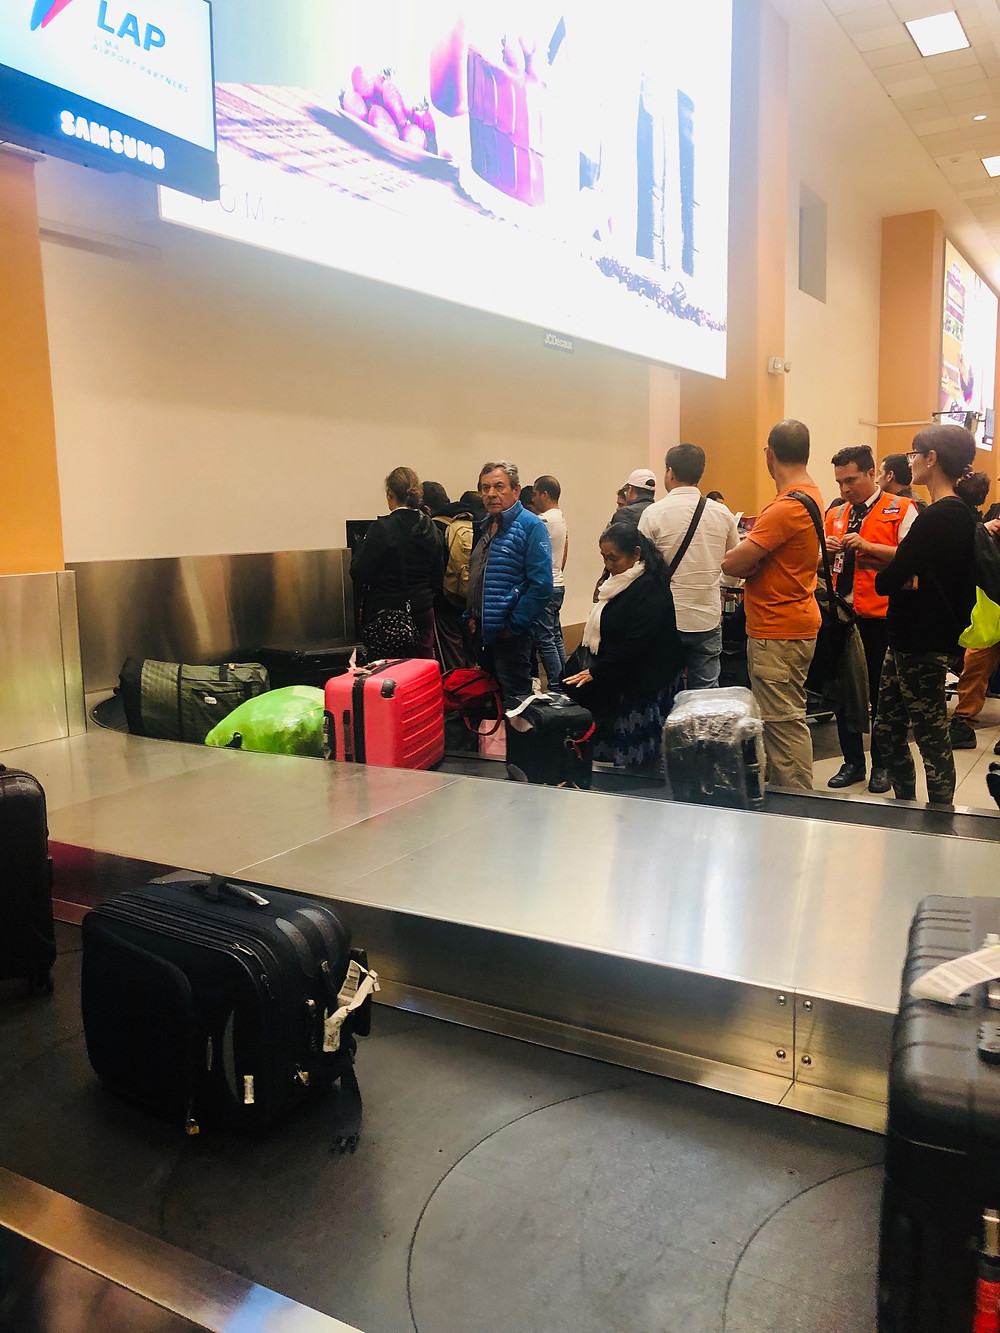 Fijian In The UK - Luggage carousel at airport, people impatiently pulling bags off from the beginning of the carousel and jamming the machine